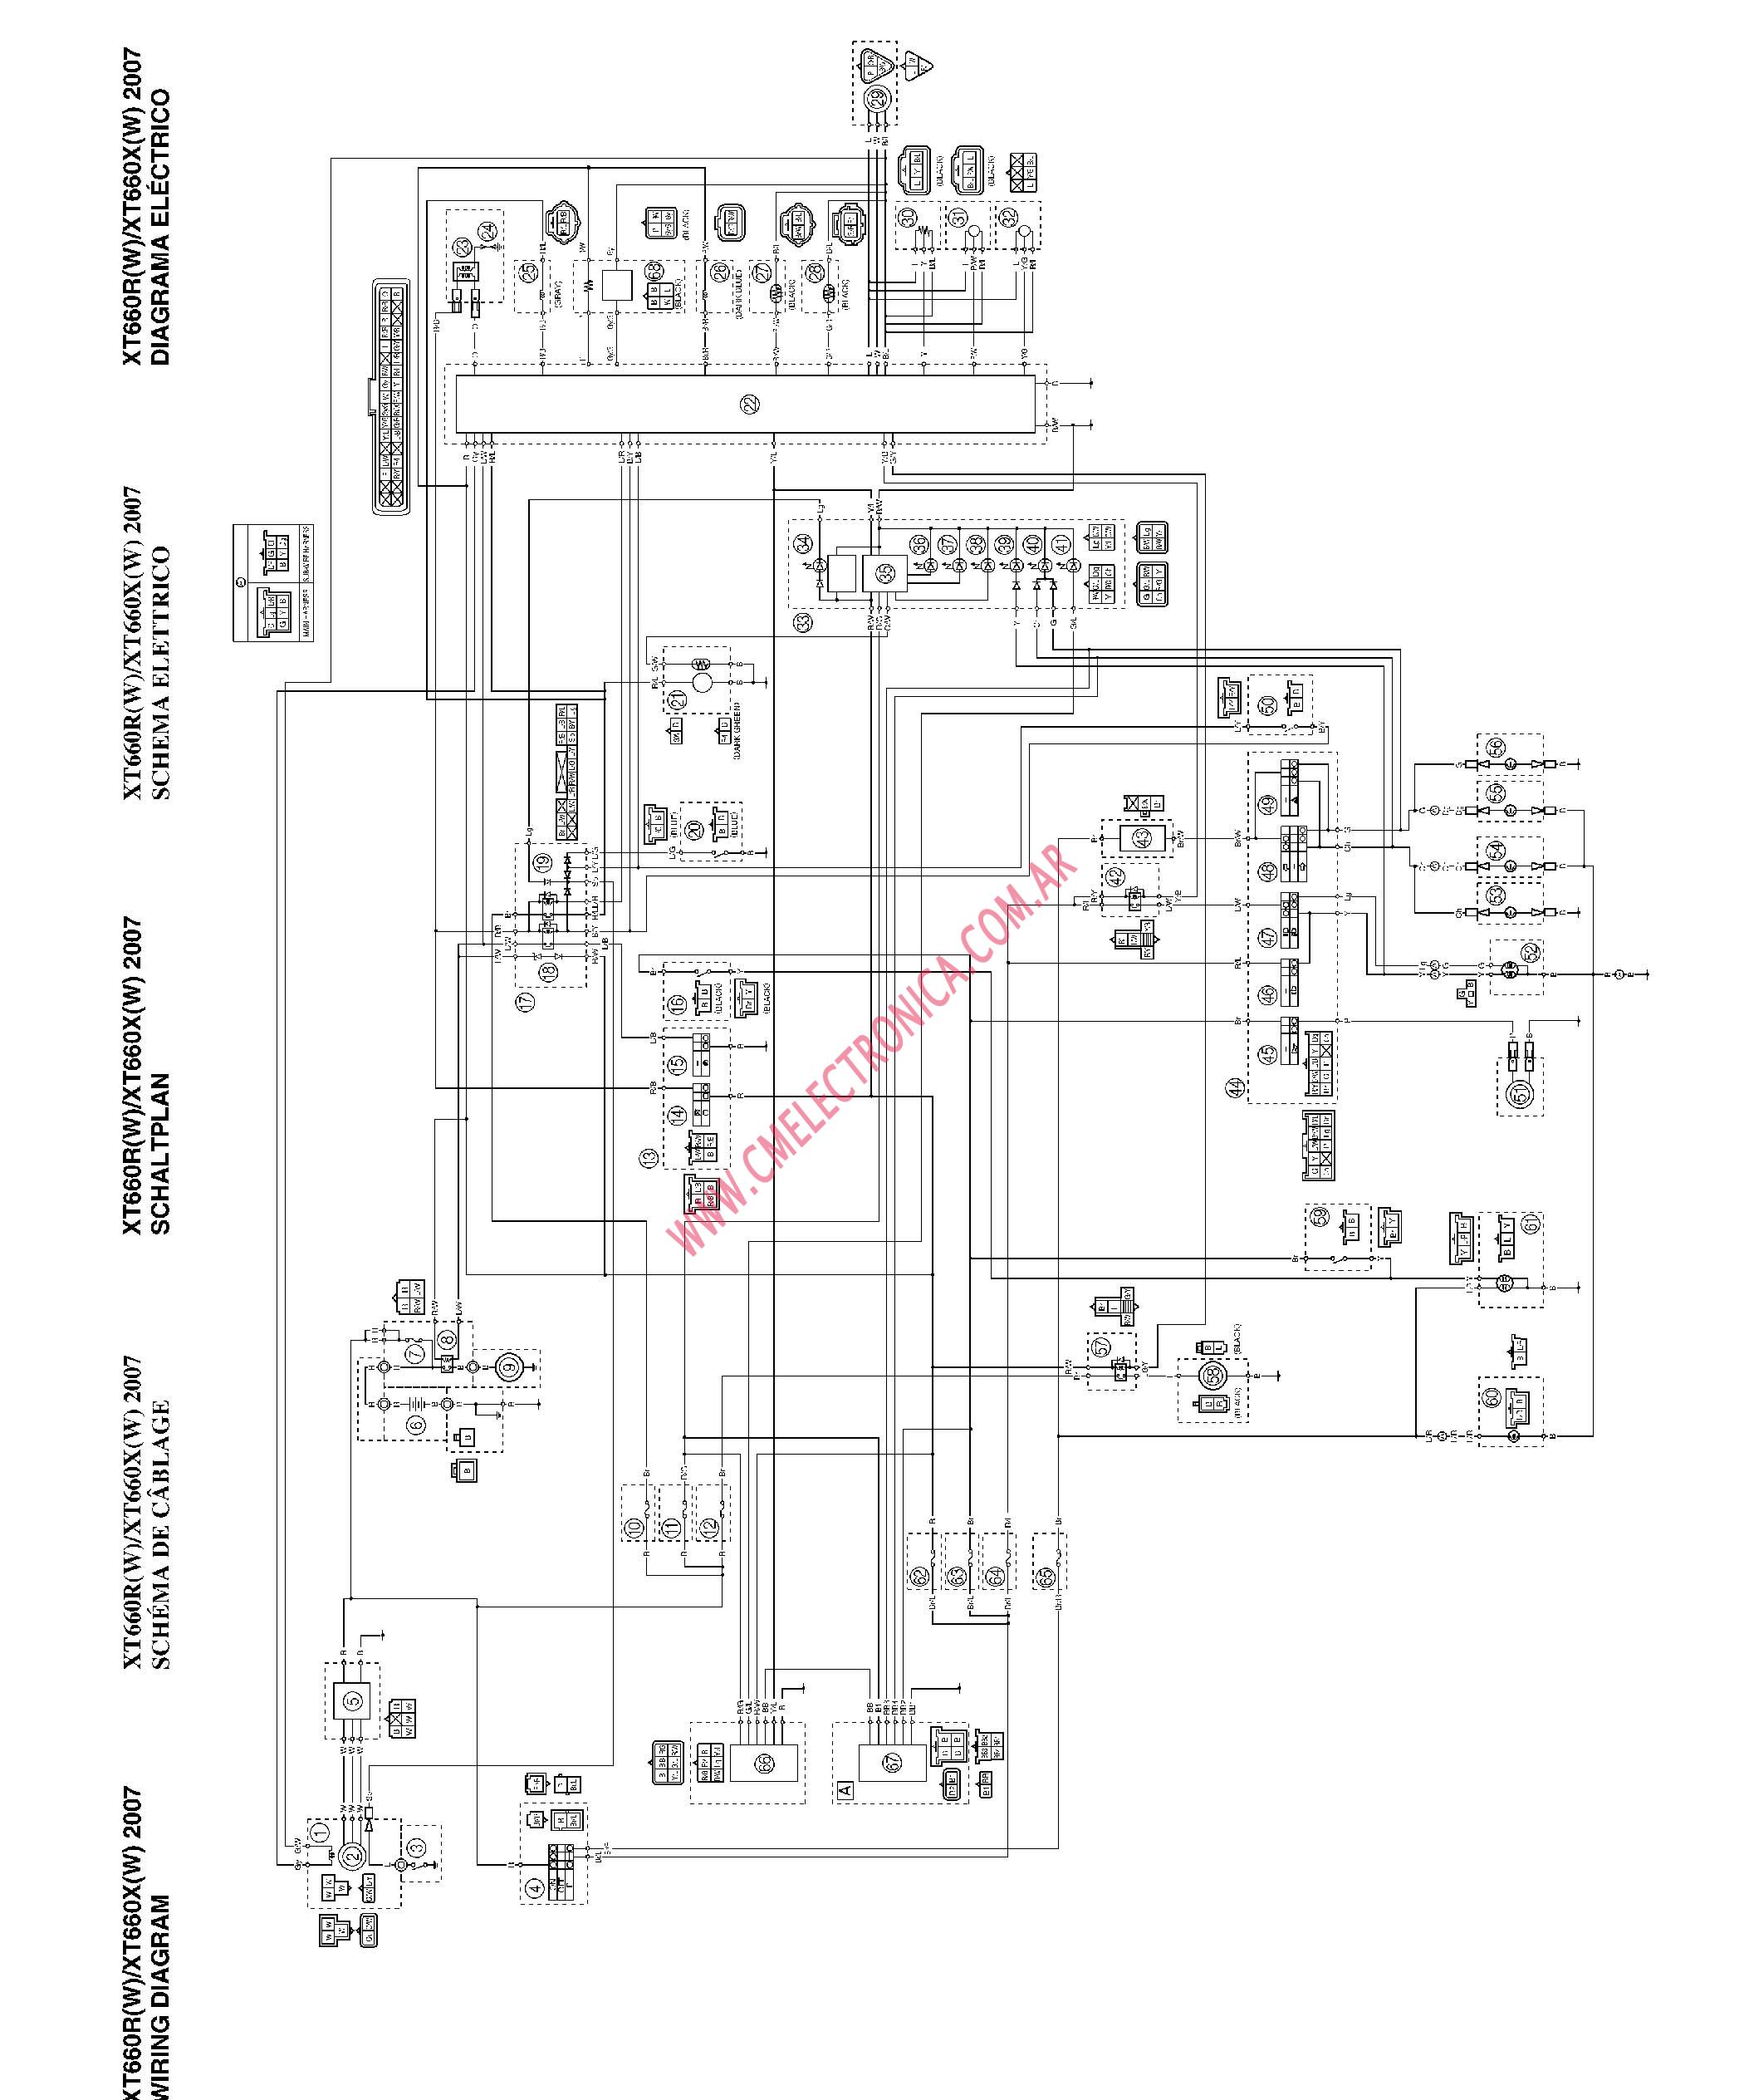 2007 suzuki king quad 700 wiring diagram   40 wiring